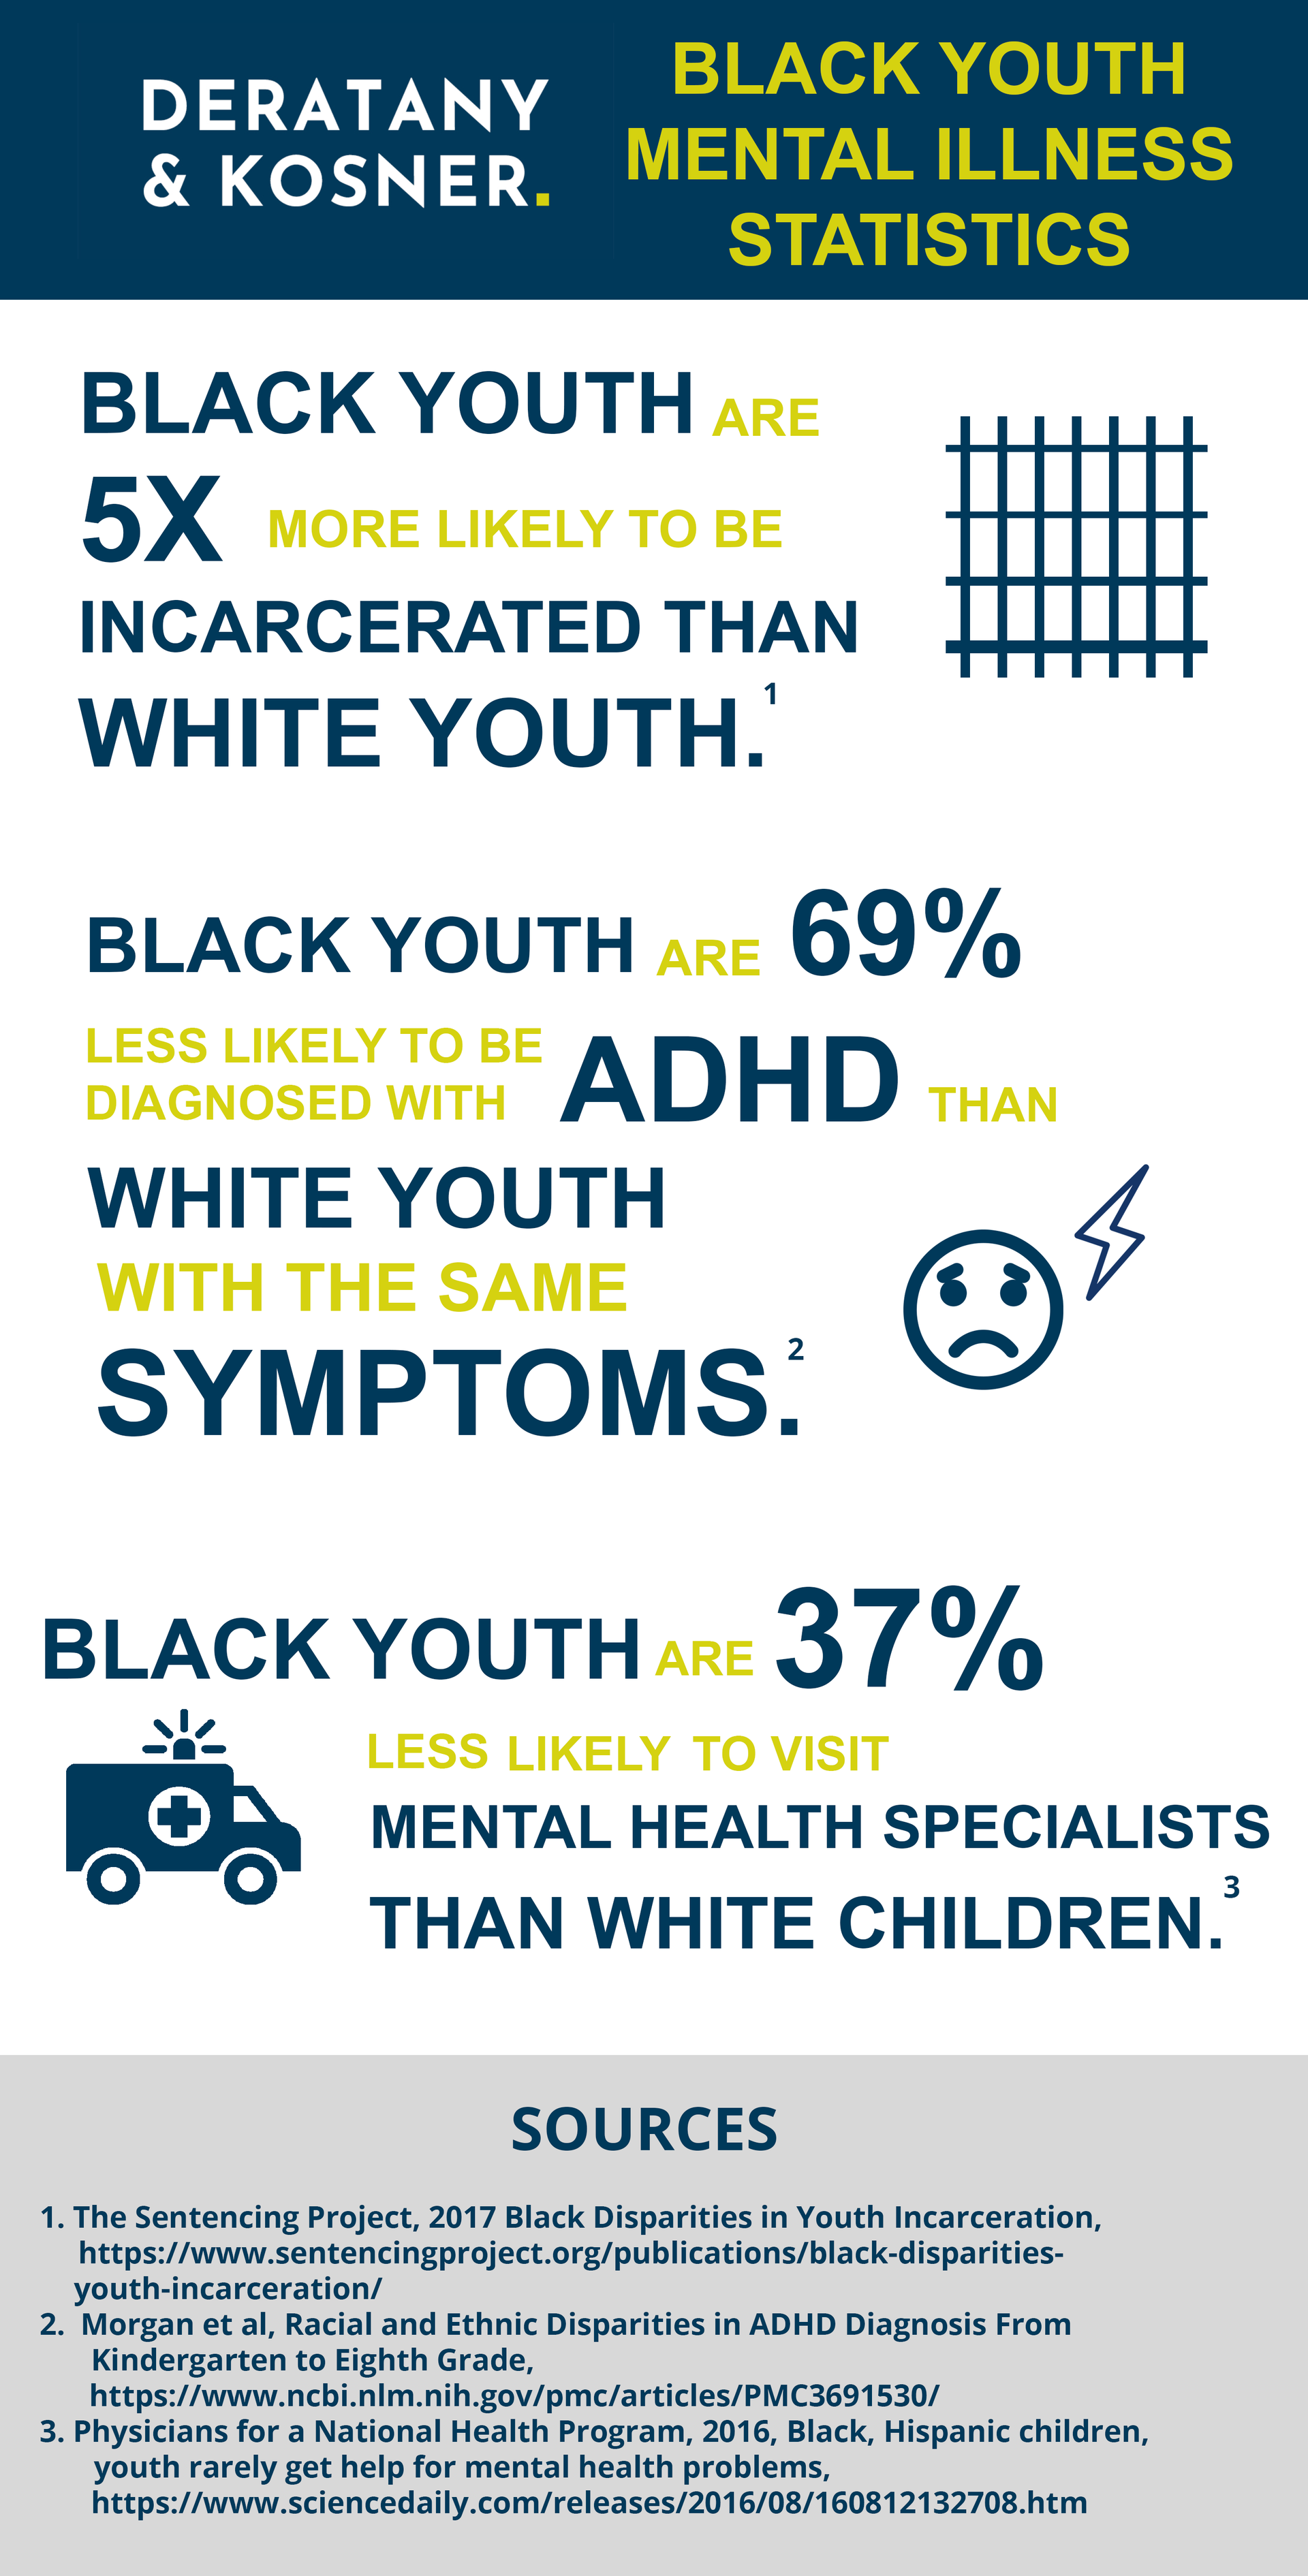 Infographic: Black Youth Mental Illness Statistics. Black Youth are 5x more likely to be incarcerated than white youth. Black youth are 69% less likely to be diagnosed with ADHD than white youth with the same symptoms. Black youth are 37% less likely to visit mental health specialists than white children.